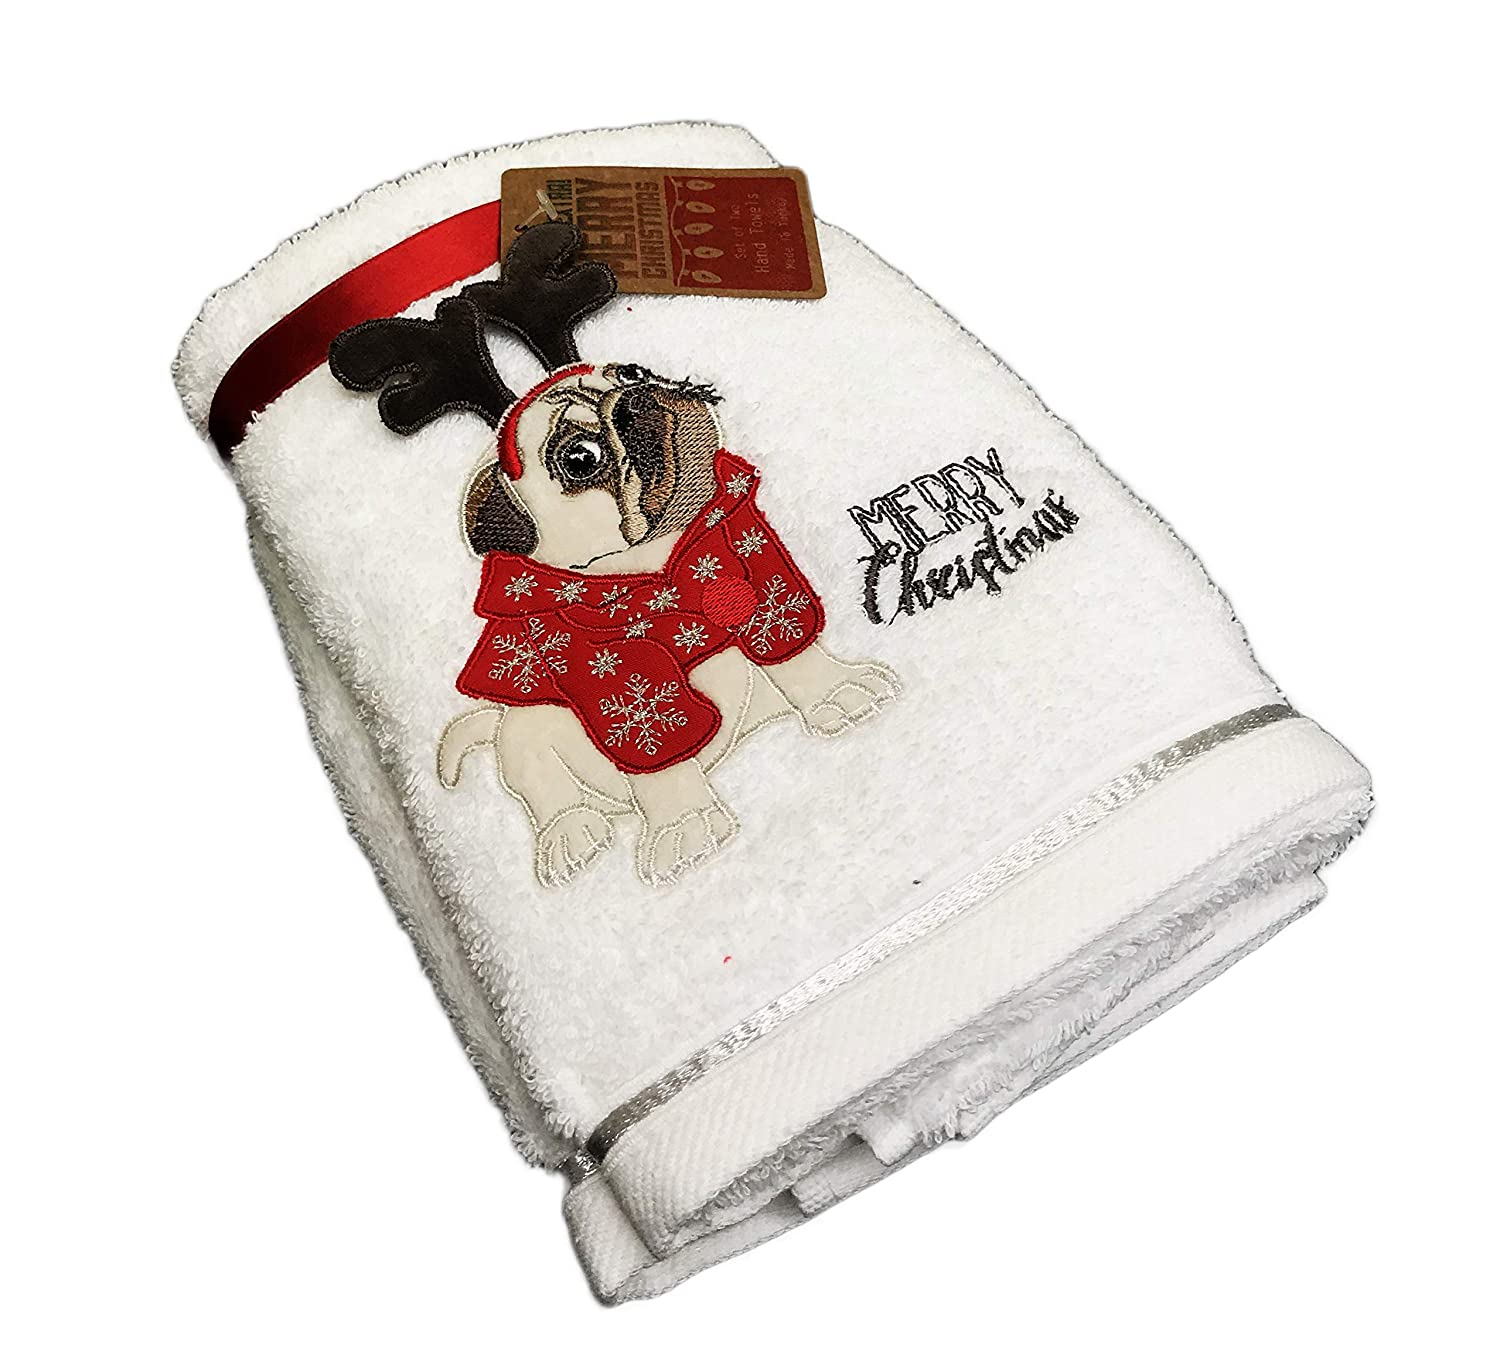 Embroidered Christmas Pug Dog in Winter Attire with Embellished Reindeer Antlers Set of Two Festive Holiday Bathroom Hand Towels